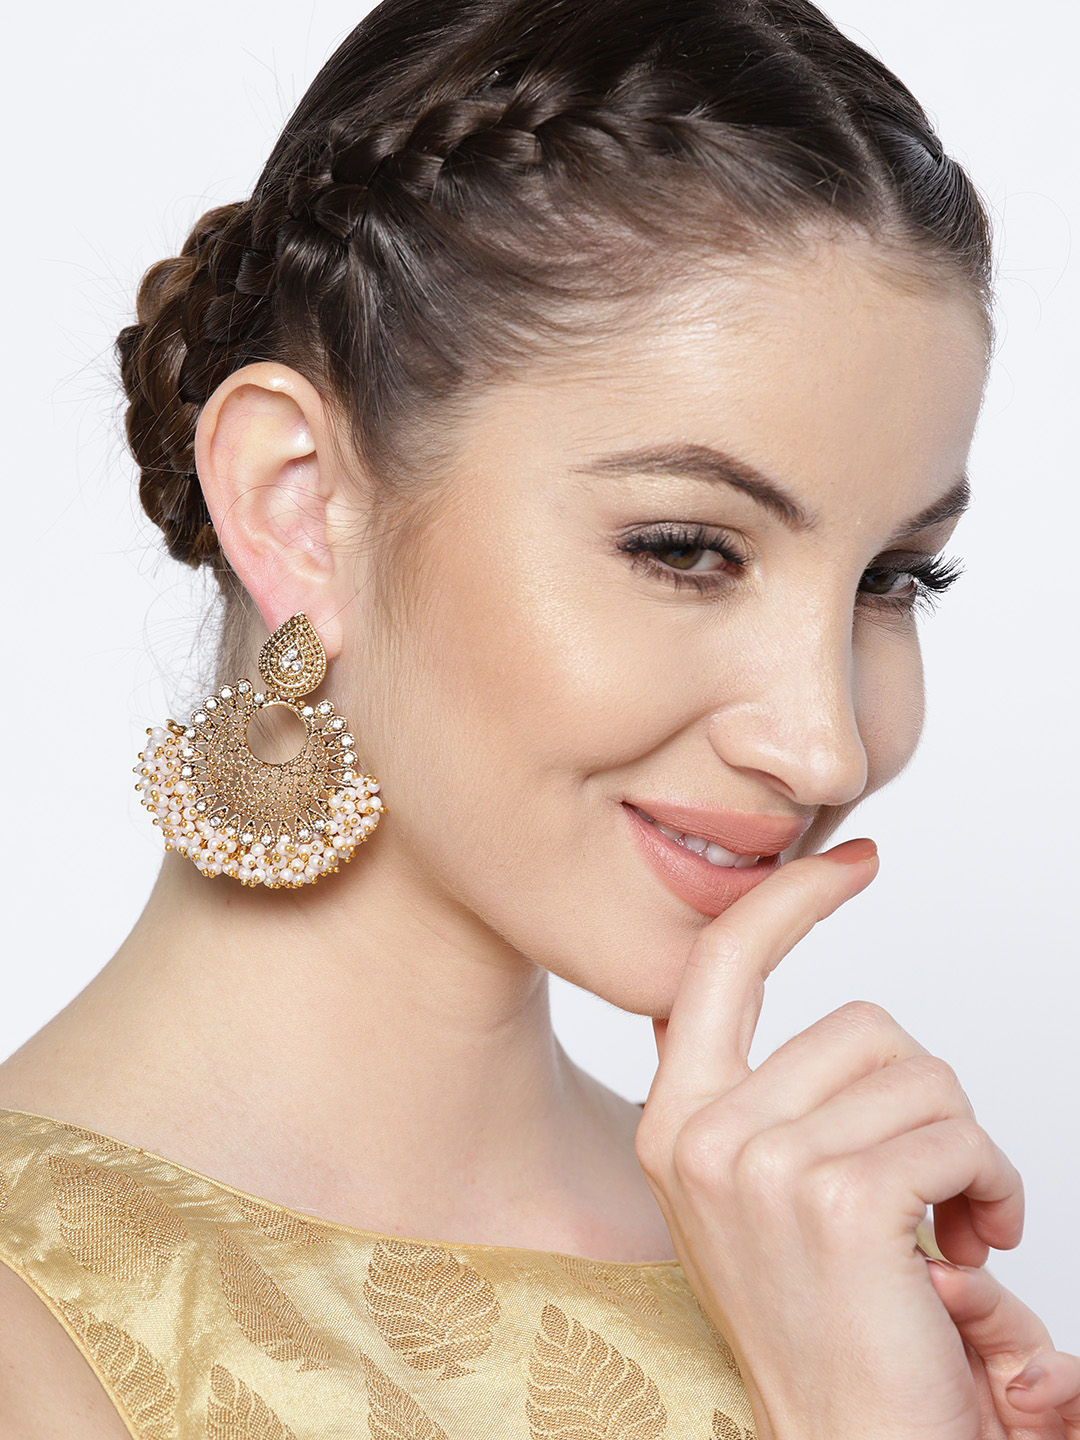 2 anushka sharma - Off-White Antique Gold-Plated Crescent Shaped Chandbalis